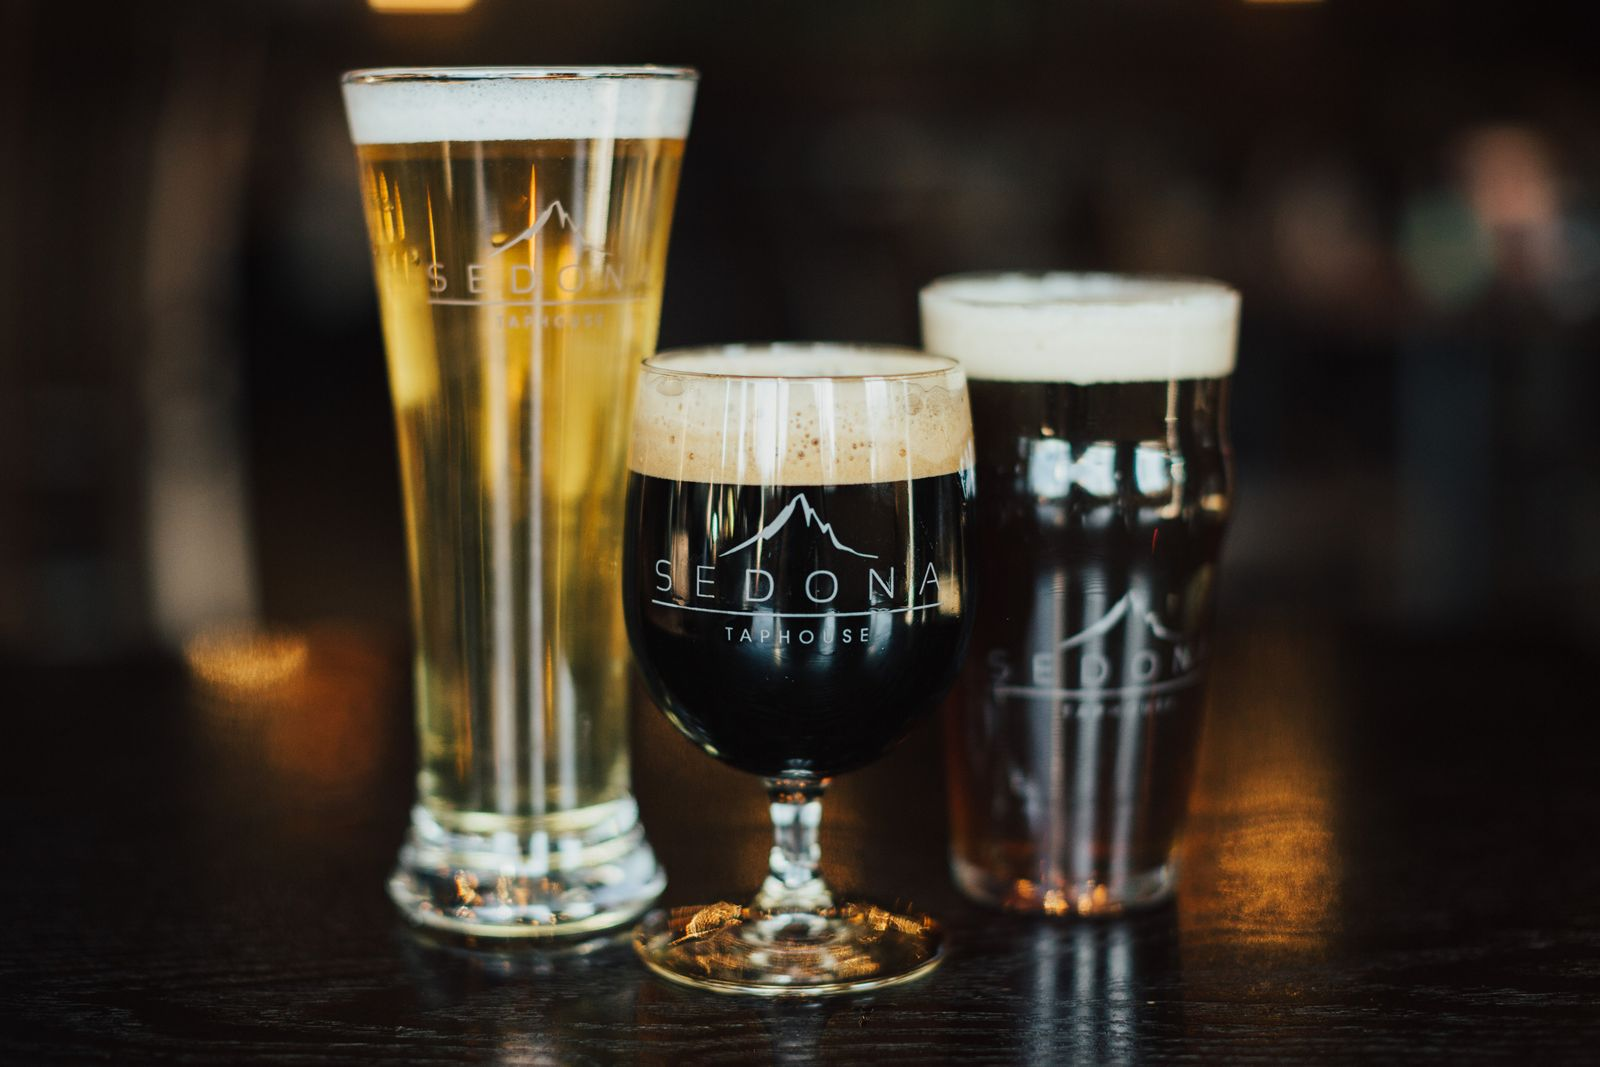 Sedona Taphouse Named to Inc. 5000 for Second Consecutive Year